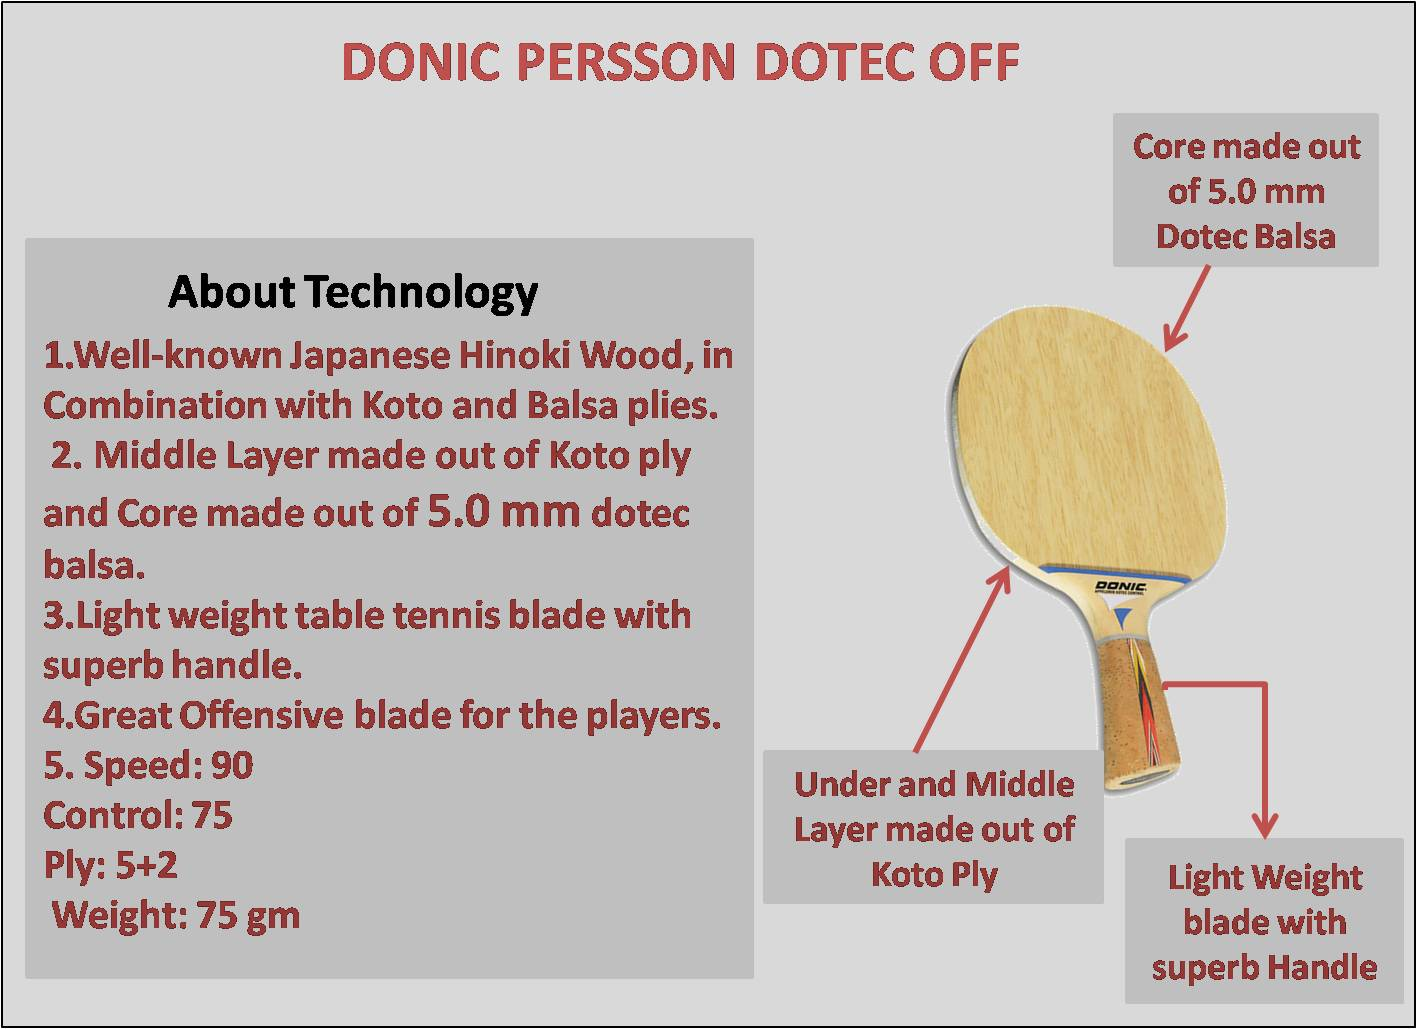 About Donic Persson Dotec Off Table Tennis Rackets